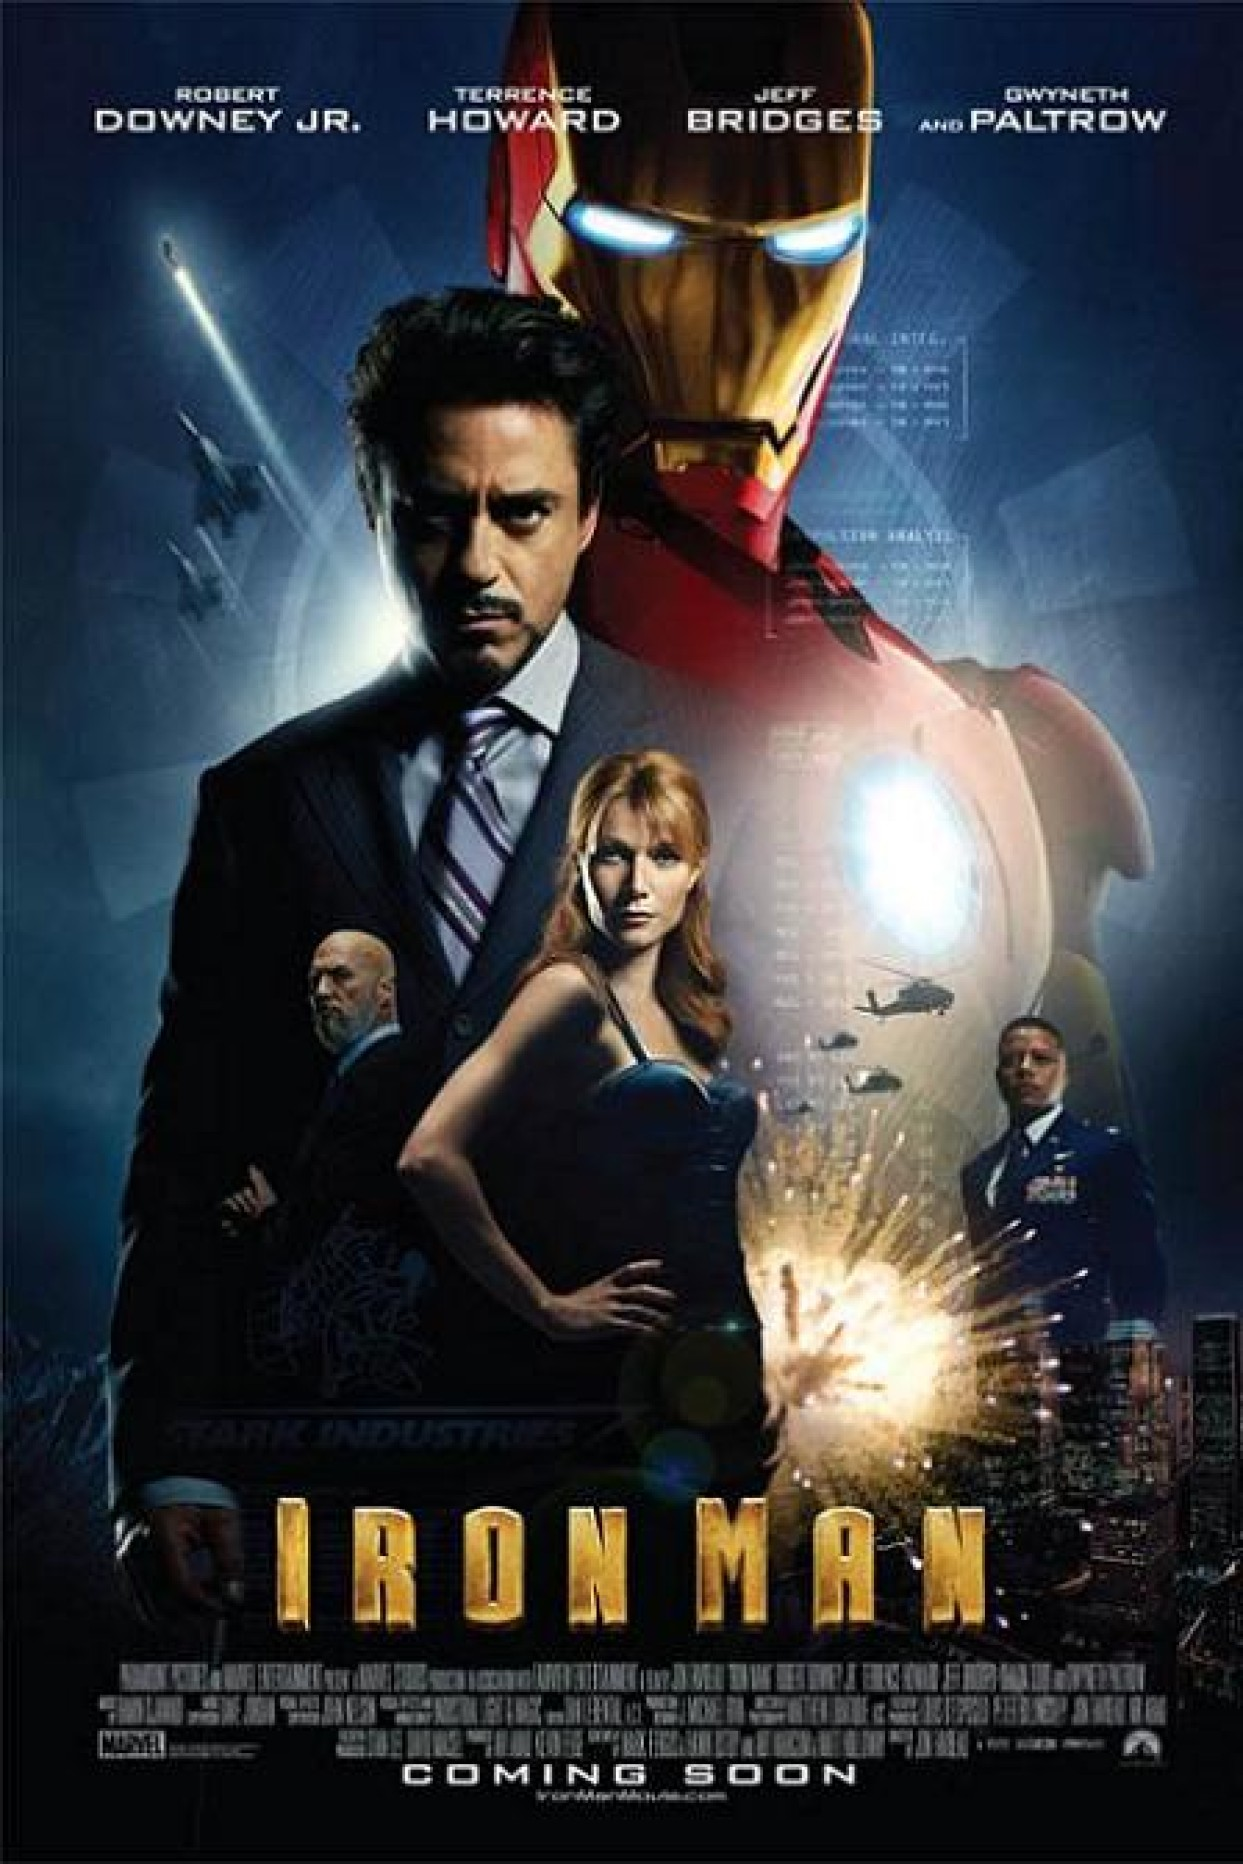 Iron-Man-2008-Film